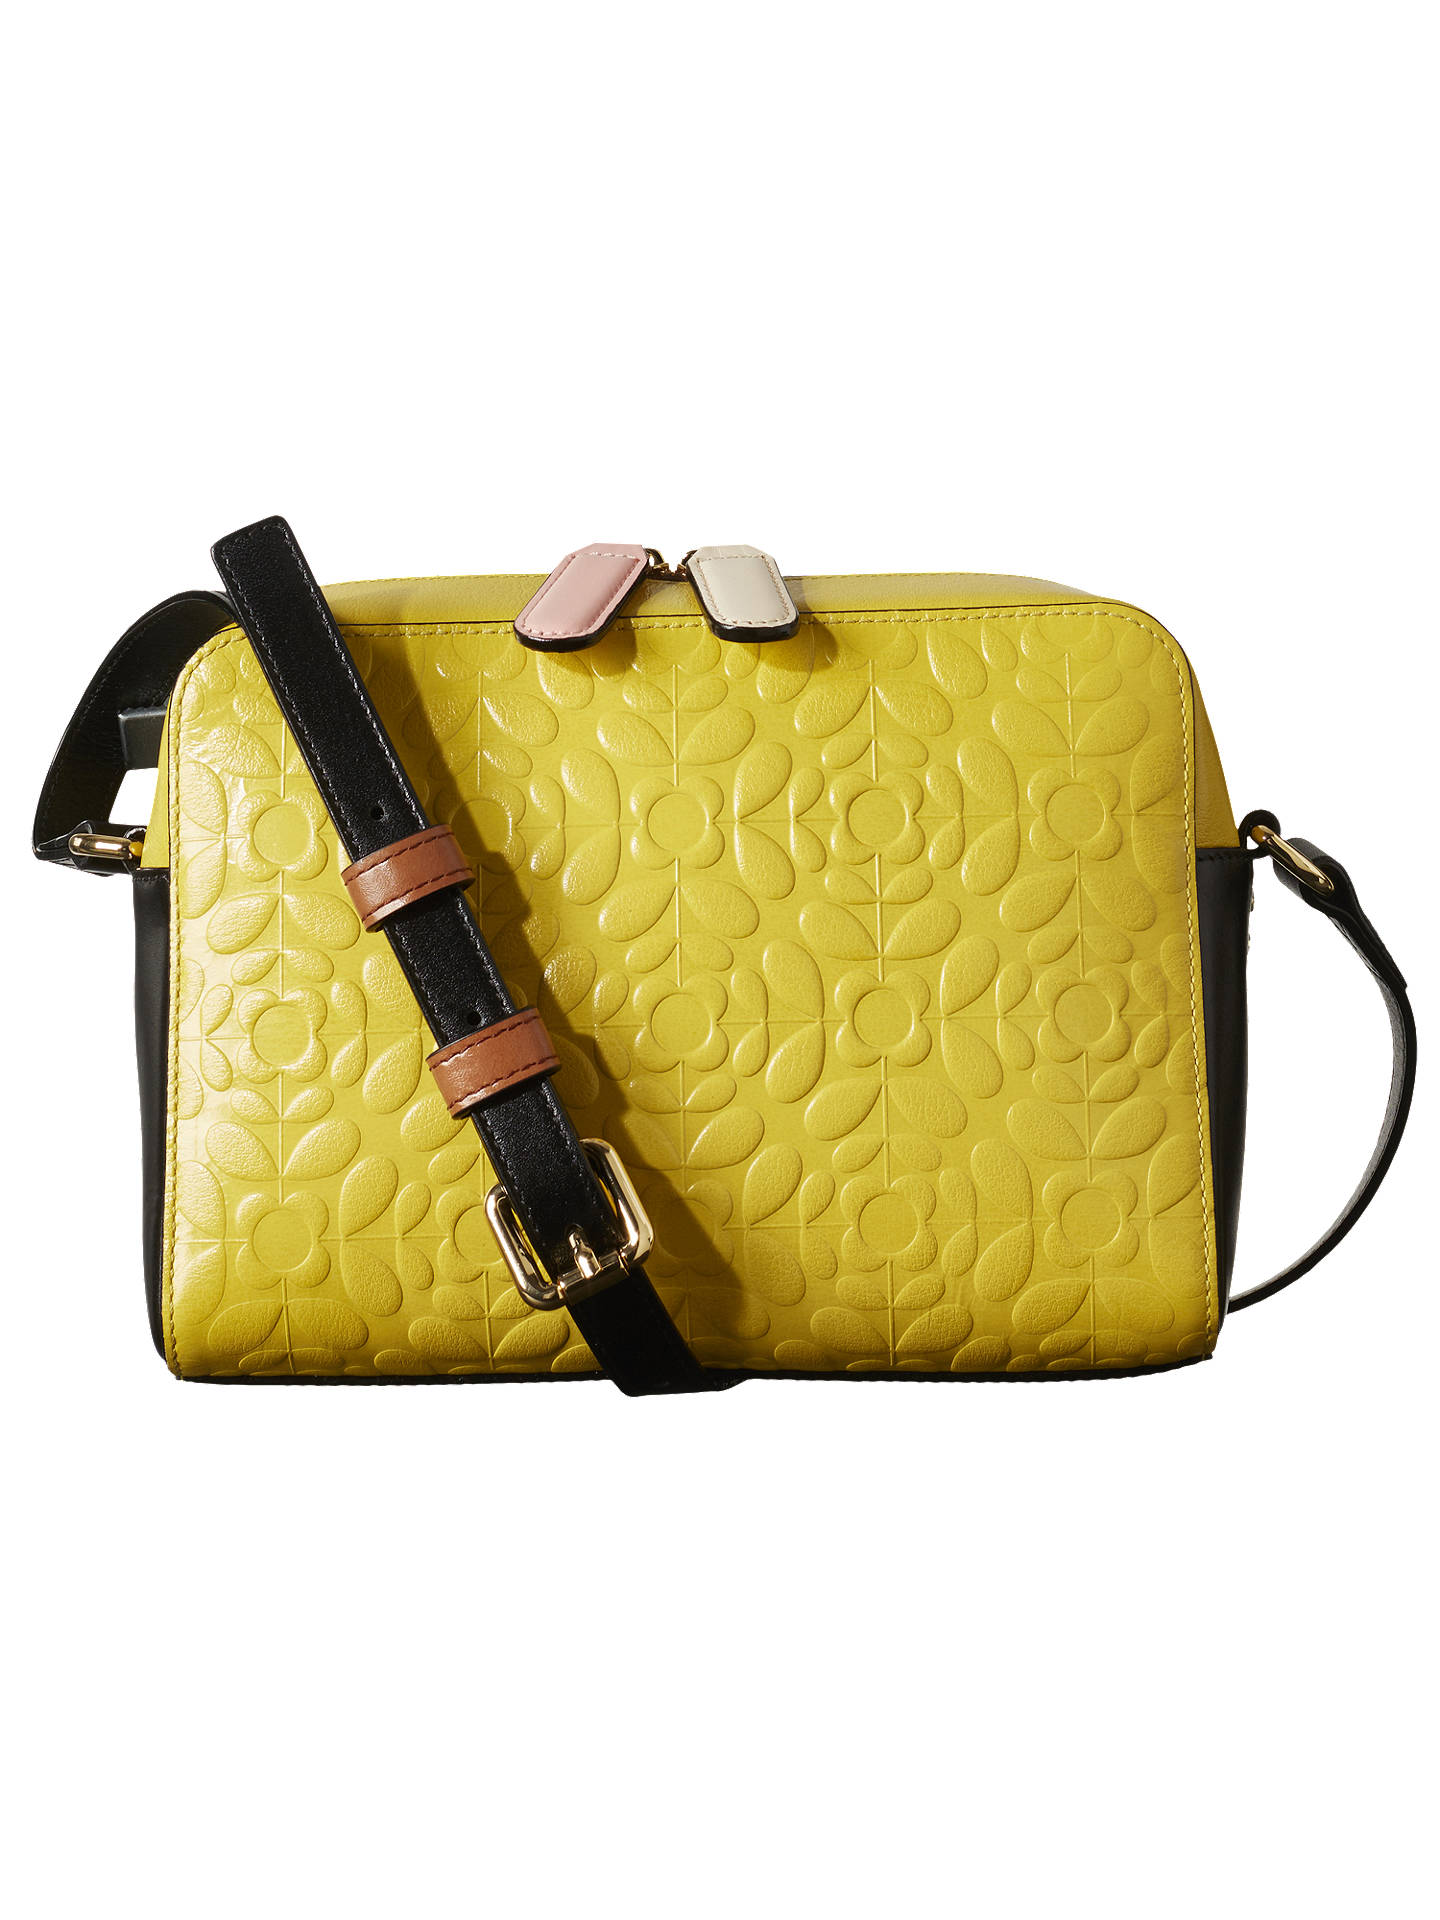 4abce570e29 Buy Orla Kiely Flower Stem Abby Leather Cross Body Bag, Yellow Online at  johnlewis.